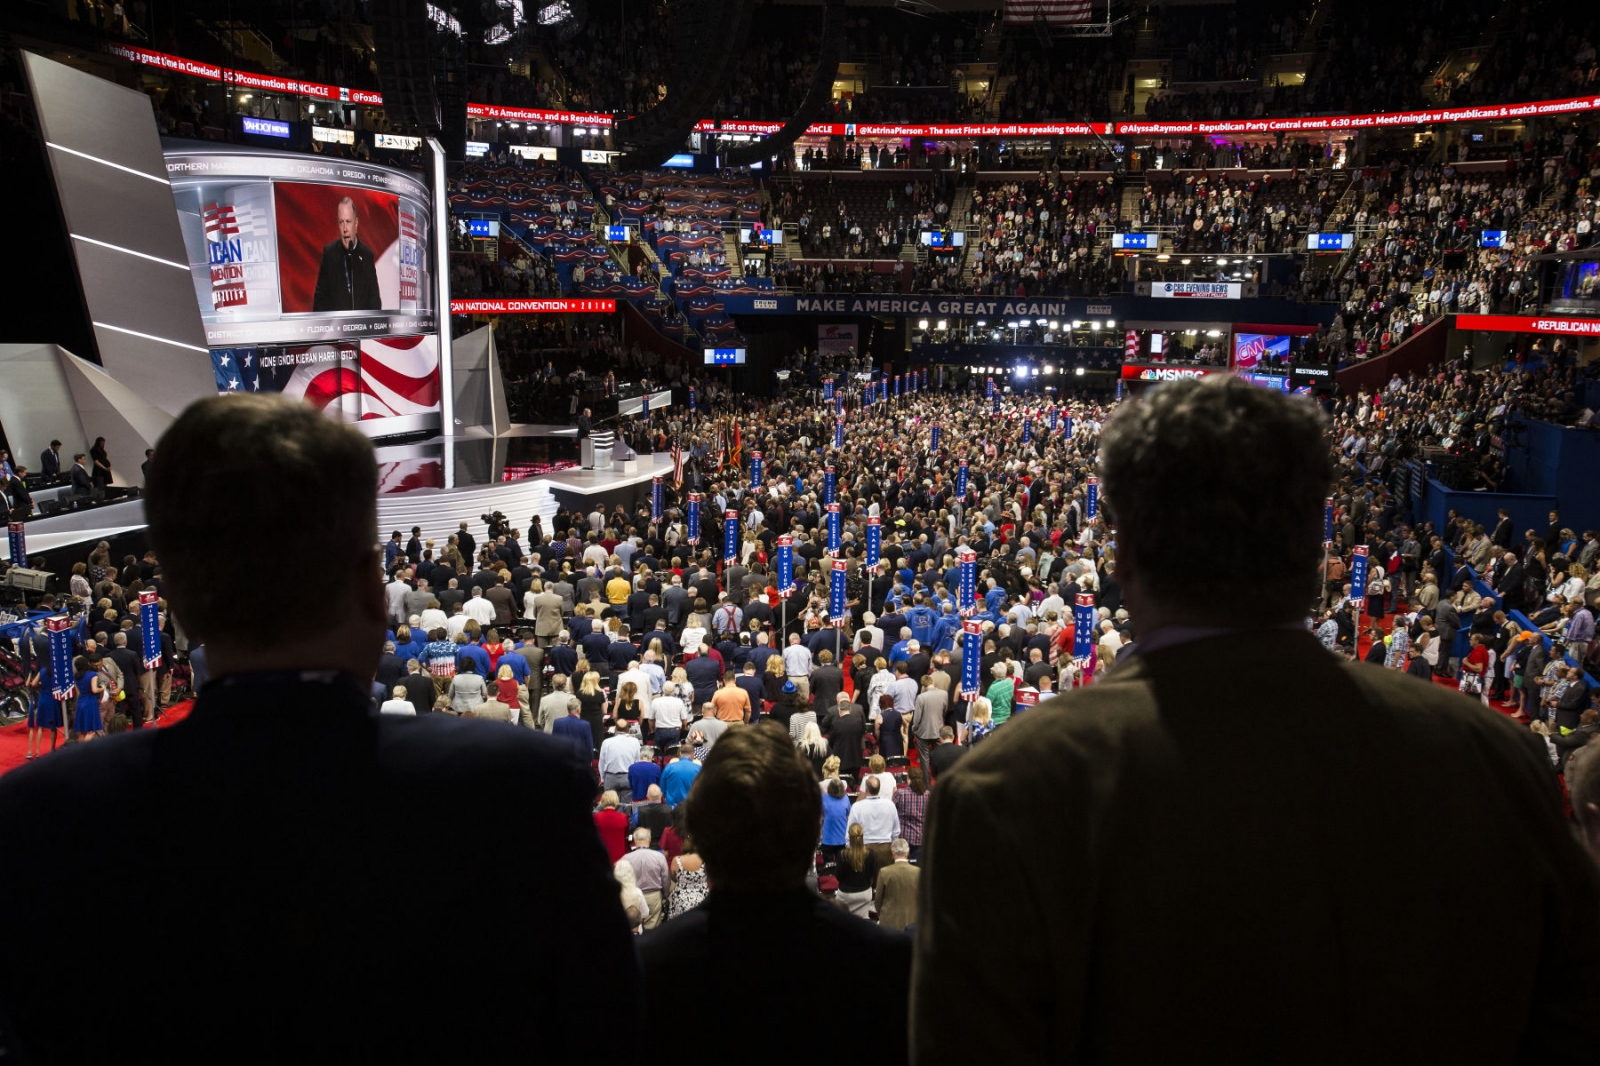 The crowd inside of the Republican National Convention. July 19, 2016